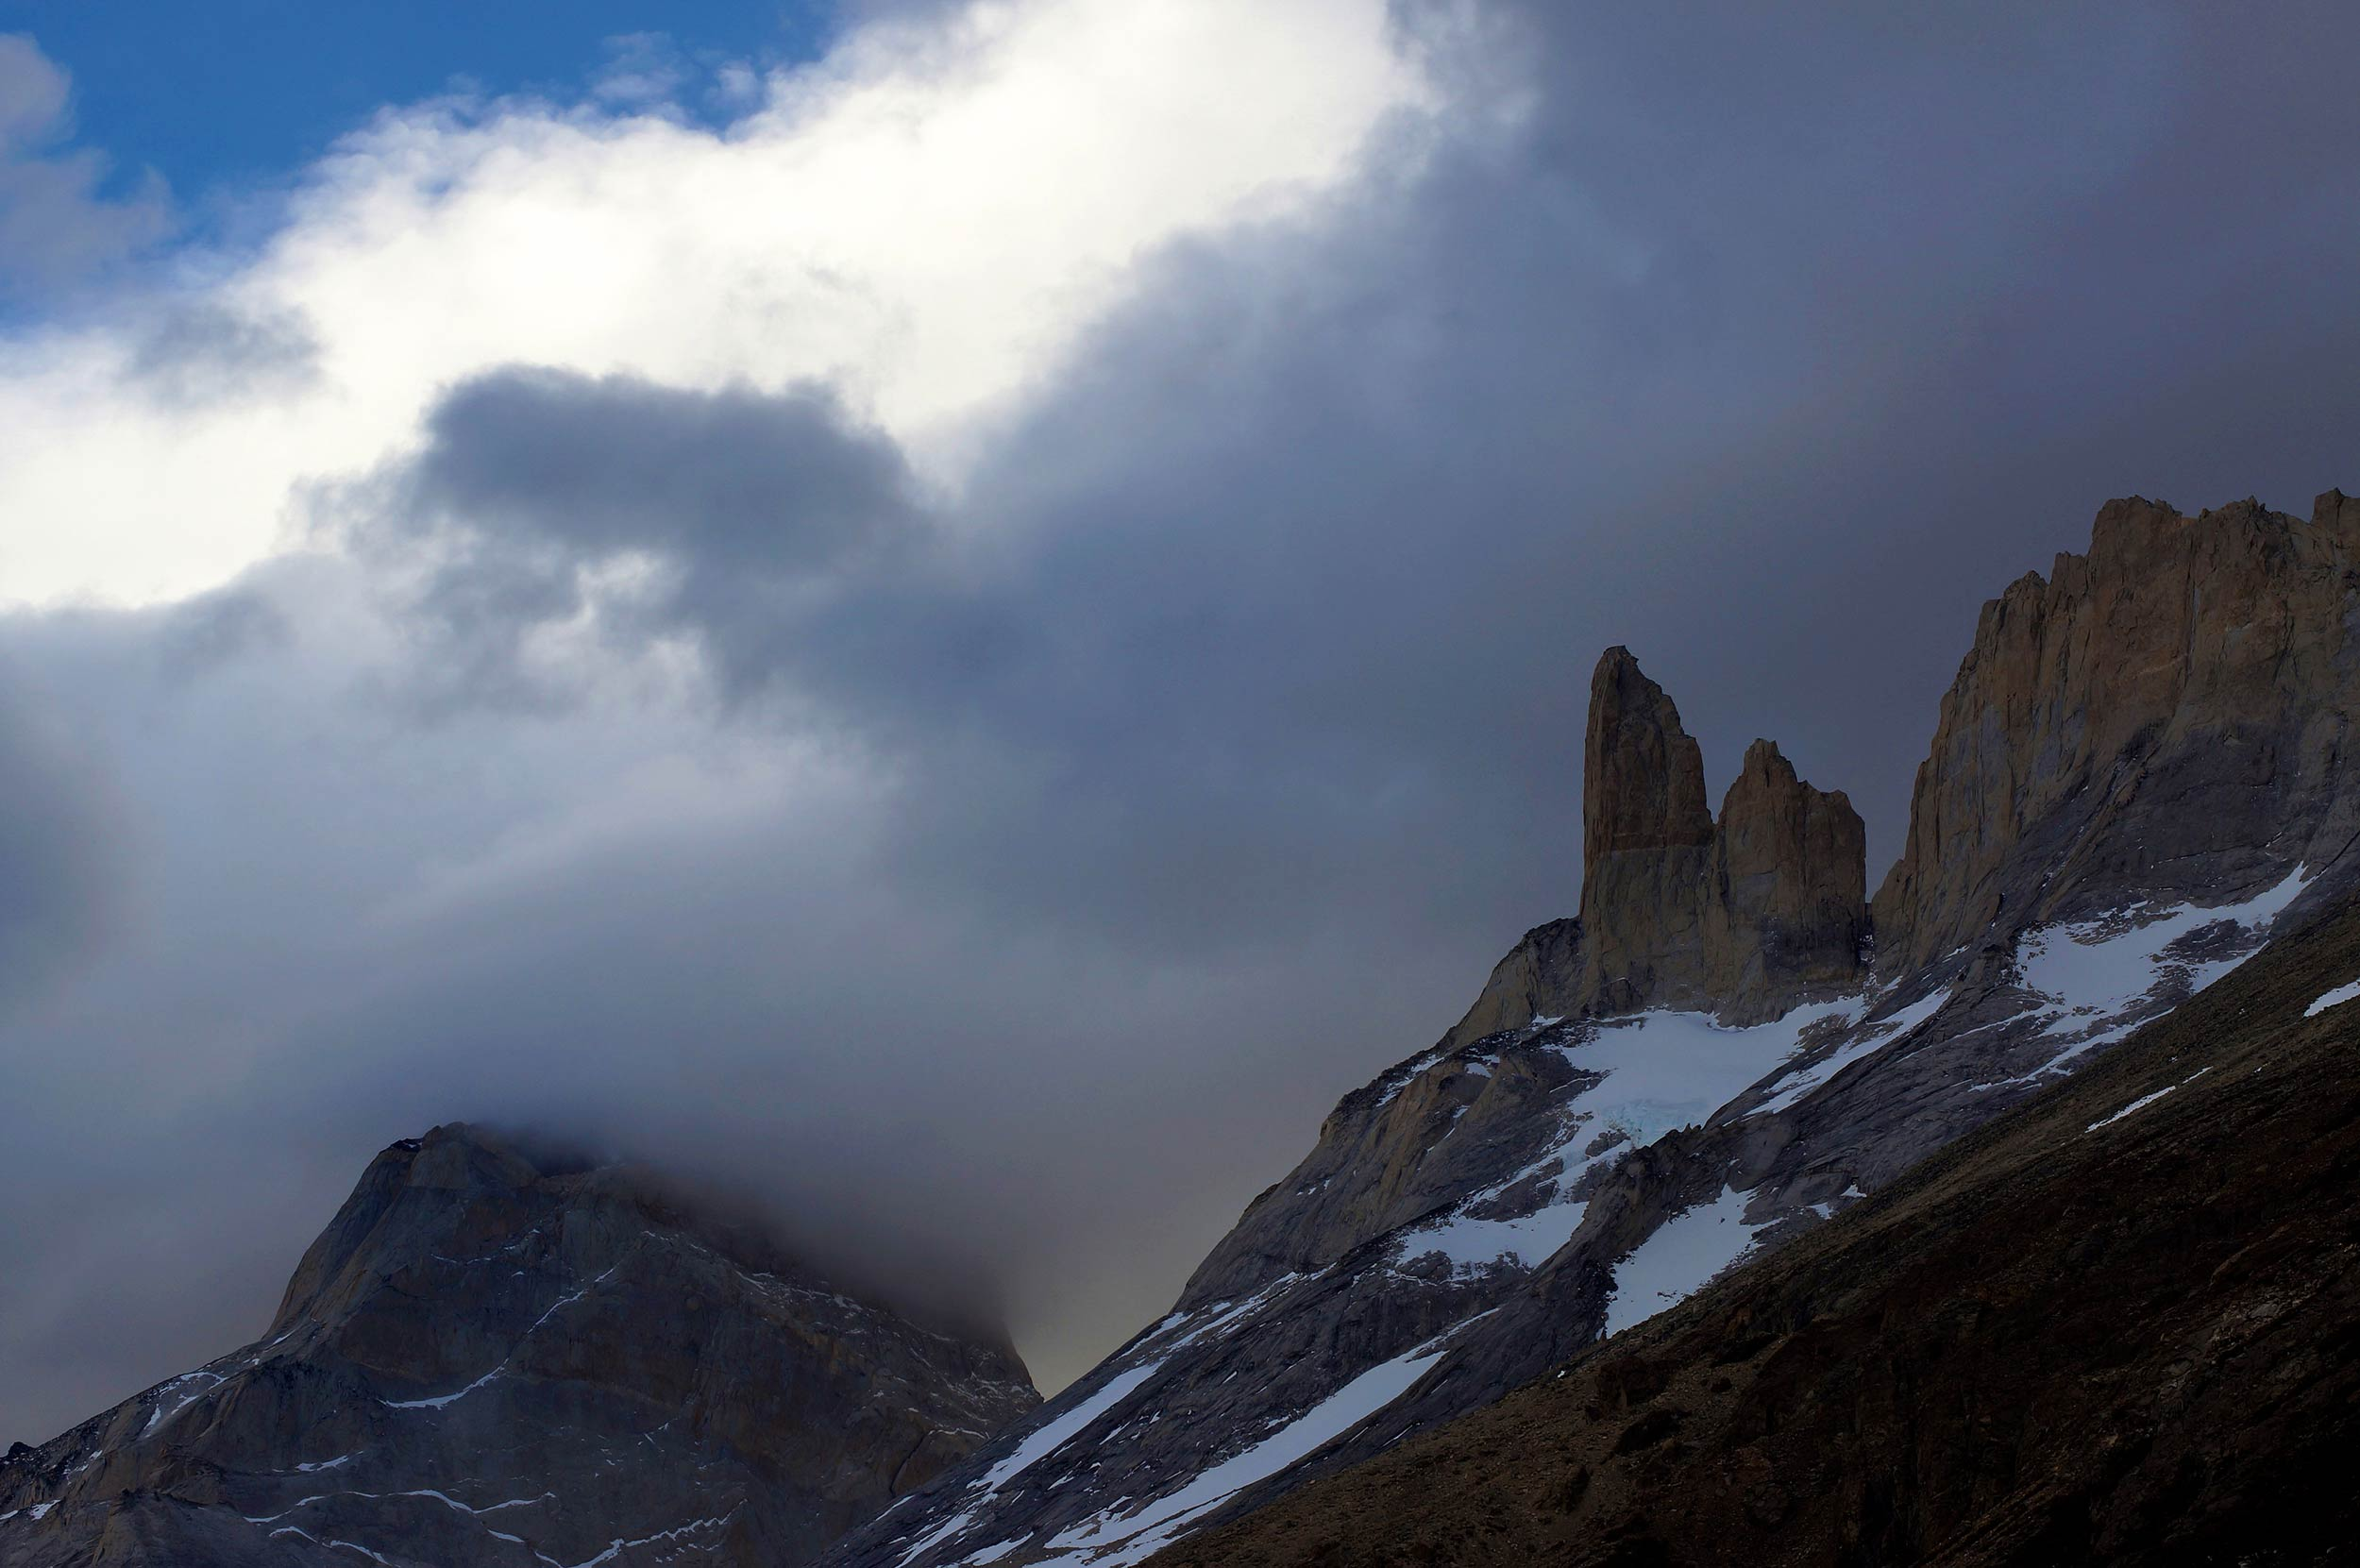 torres_del_paine_w_trek_clouds.jpg